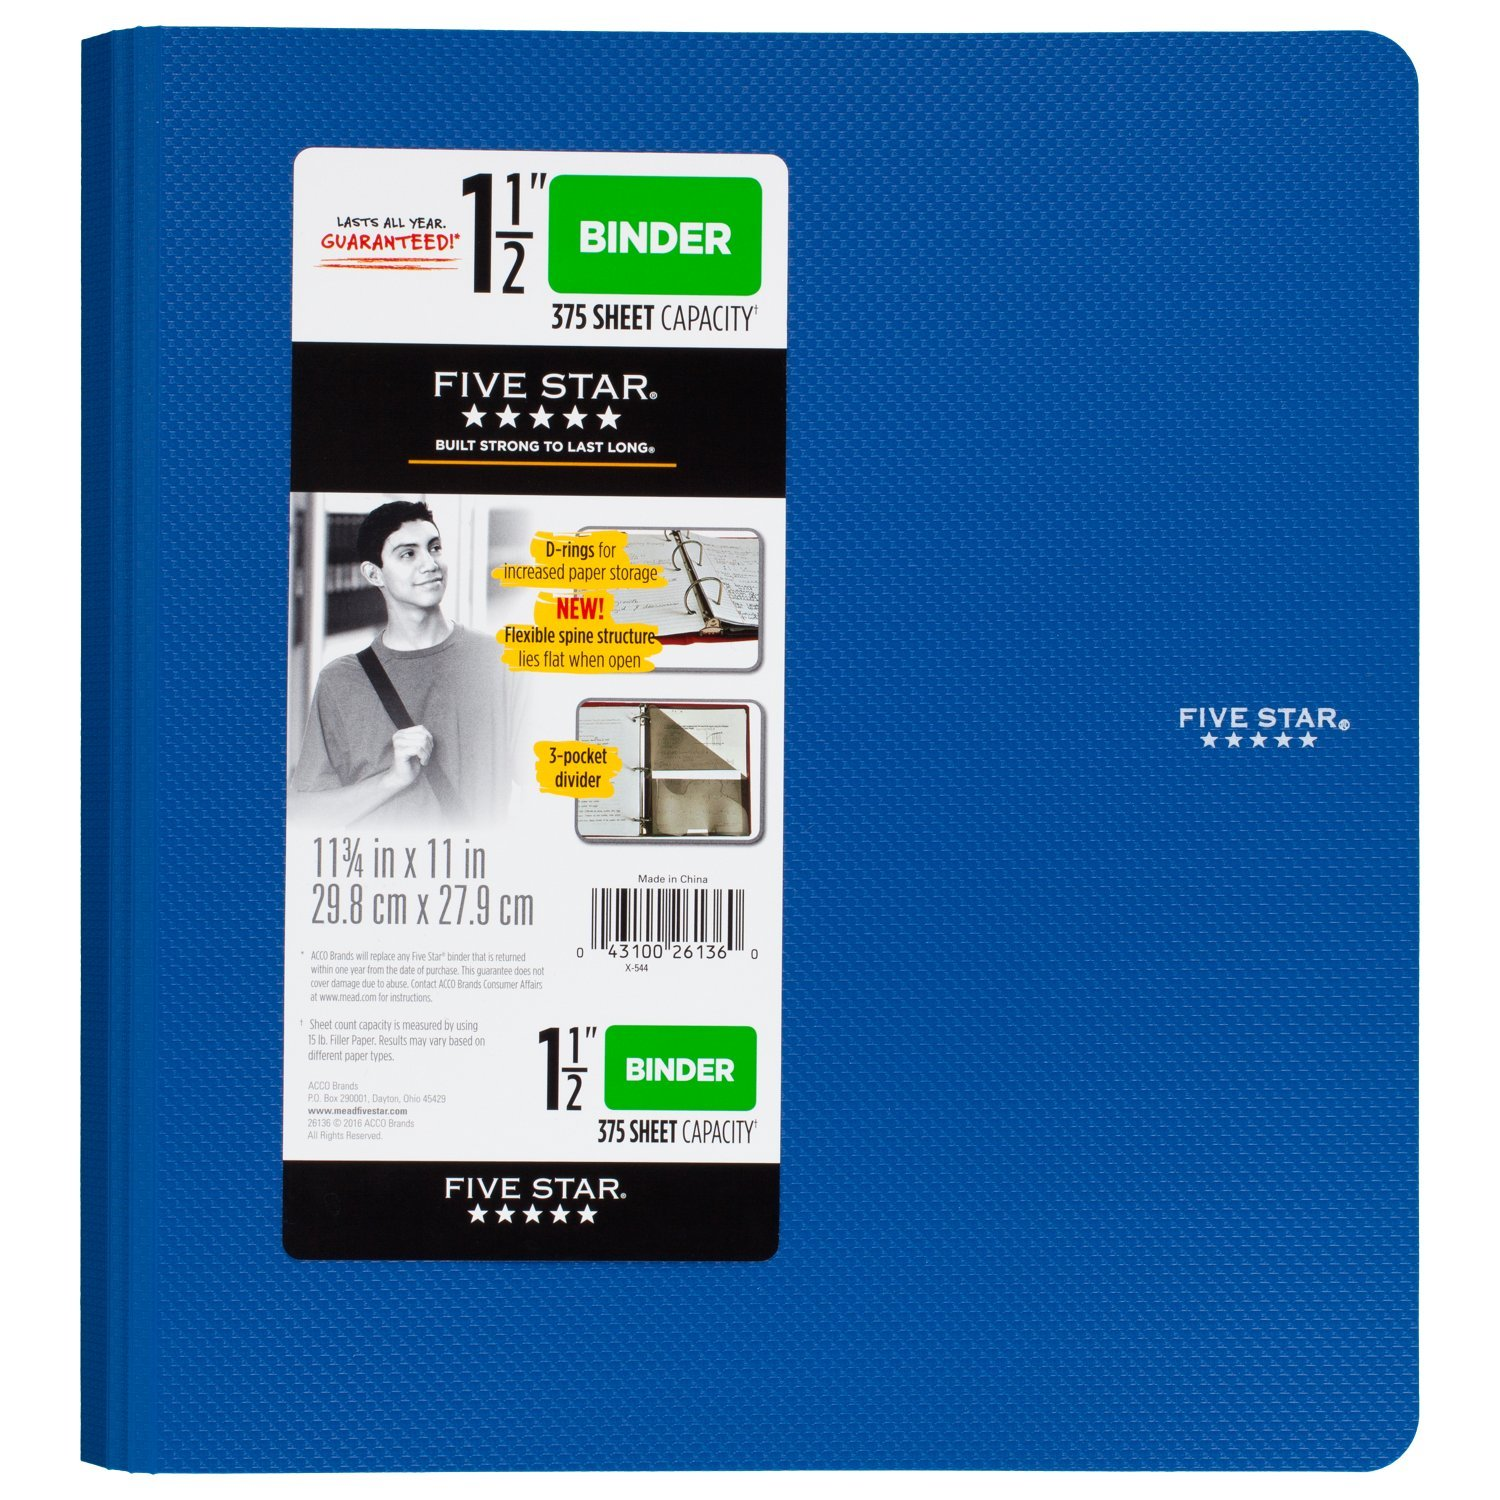 Five Star 1-1/2 inch 3 Ring Binder, Plastic, Blue (38914) by Five Star (Image #1)